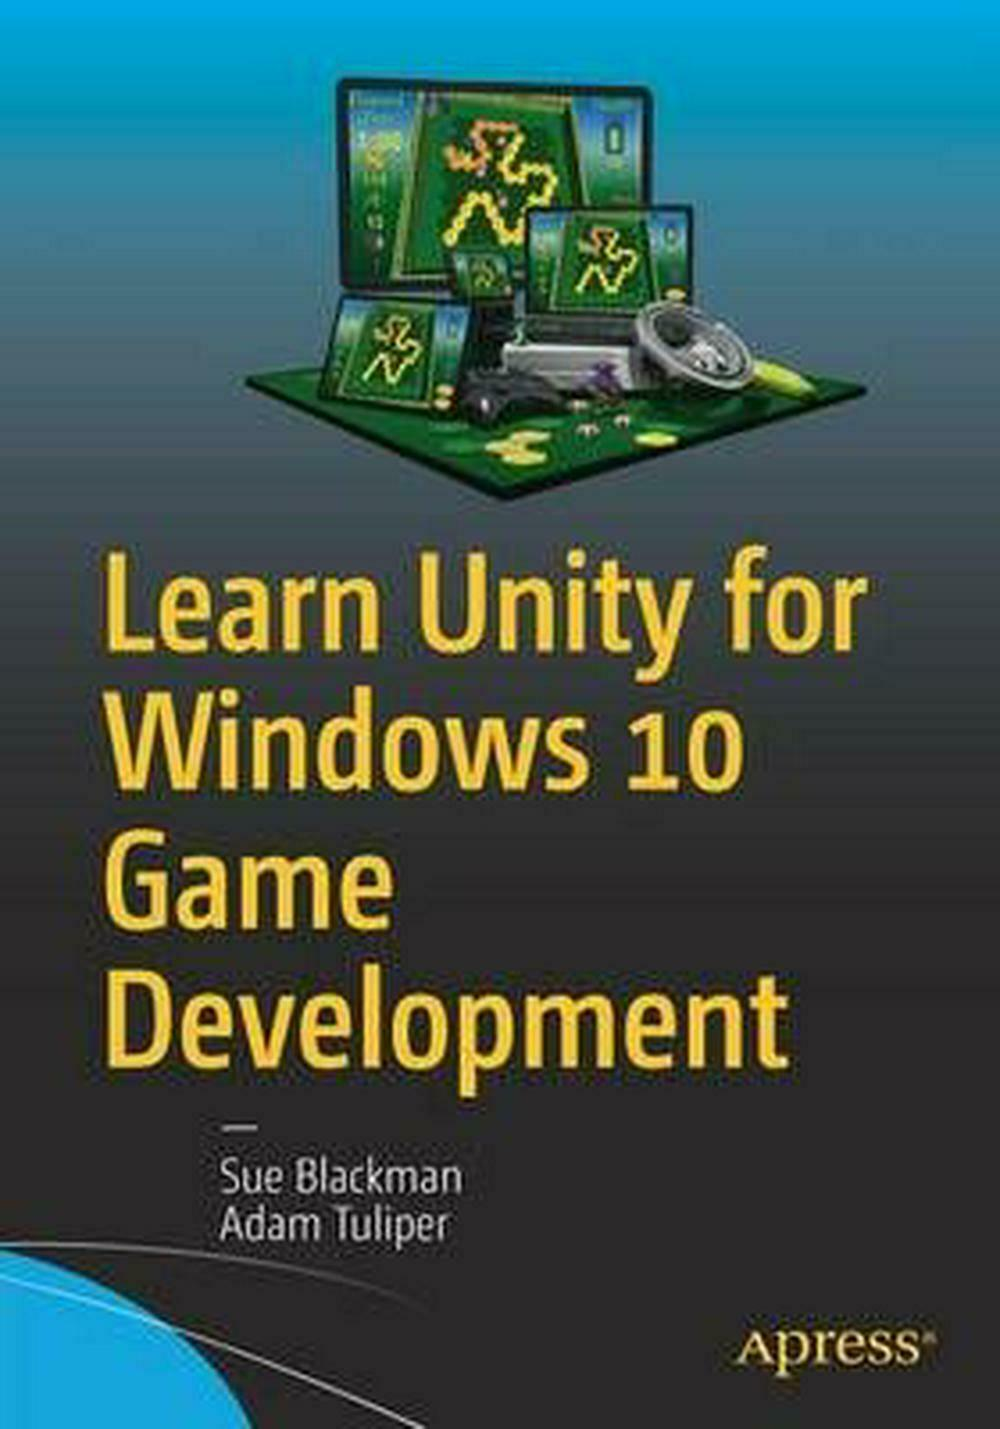 Learn Unity for Windows 10 Game Development by Sue Blackman (English) Paperback |